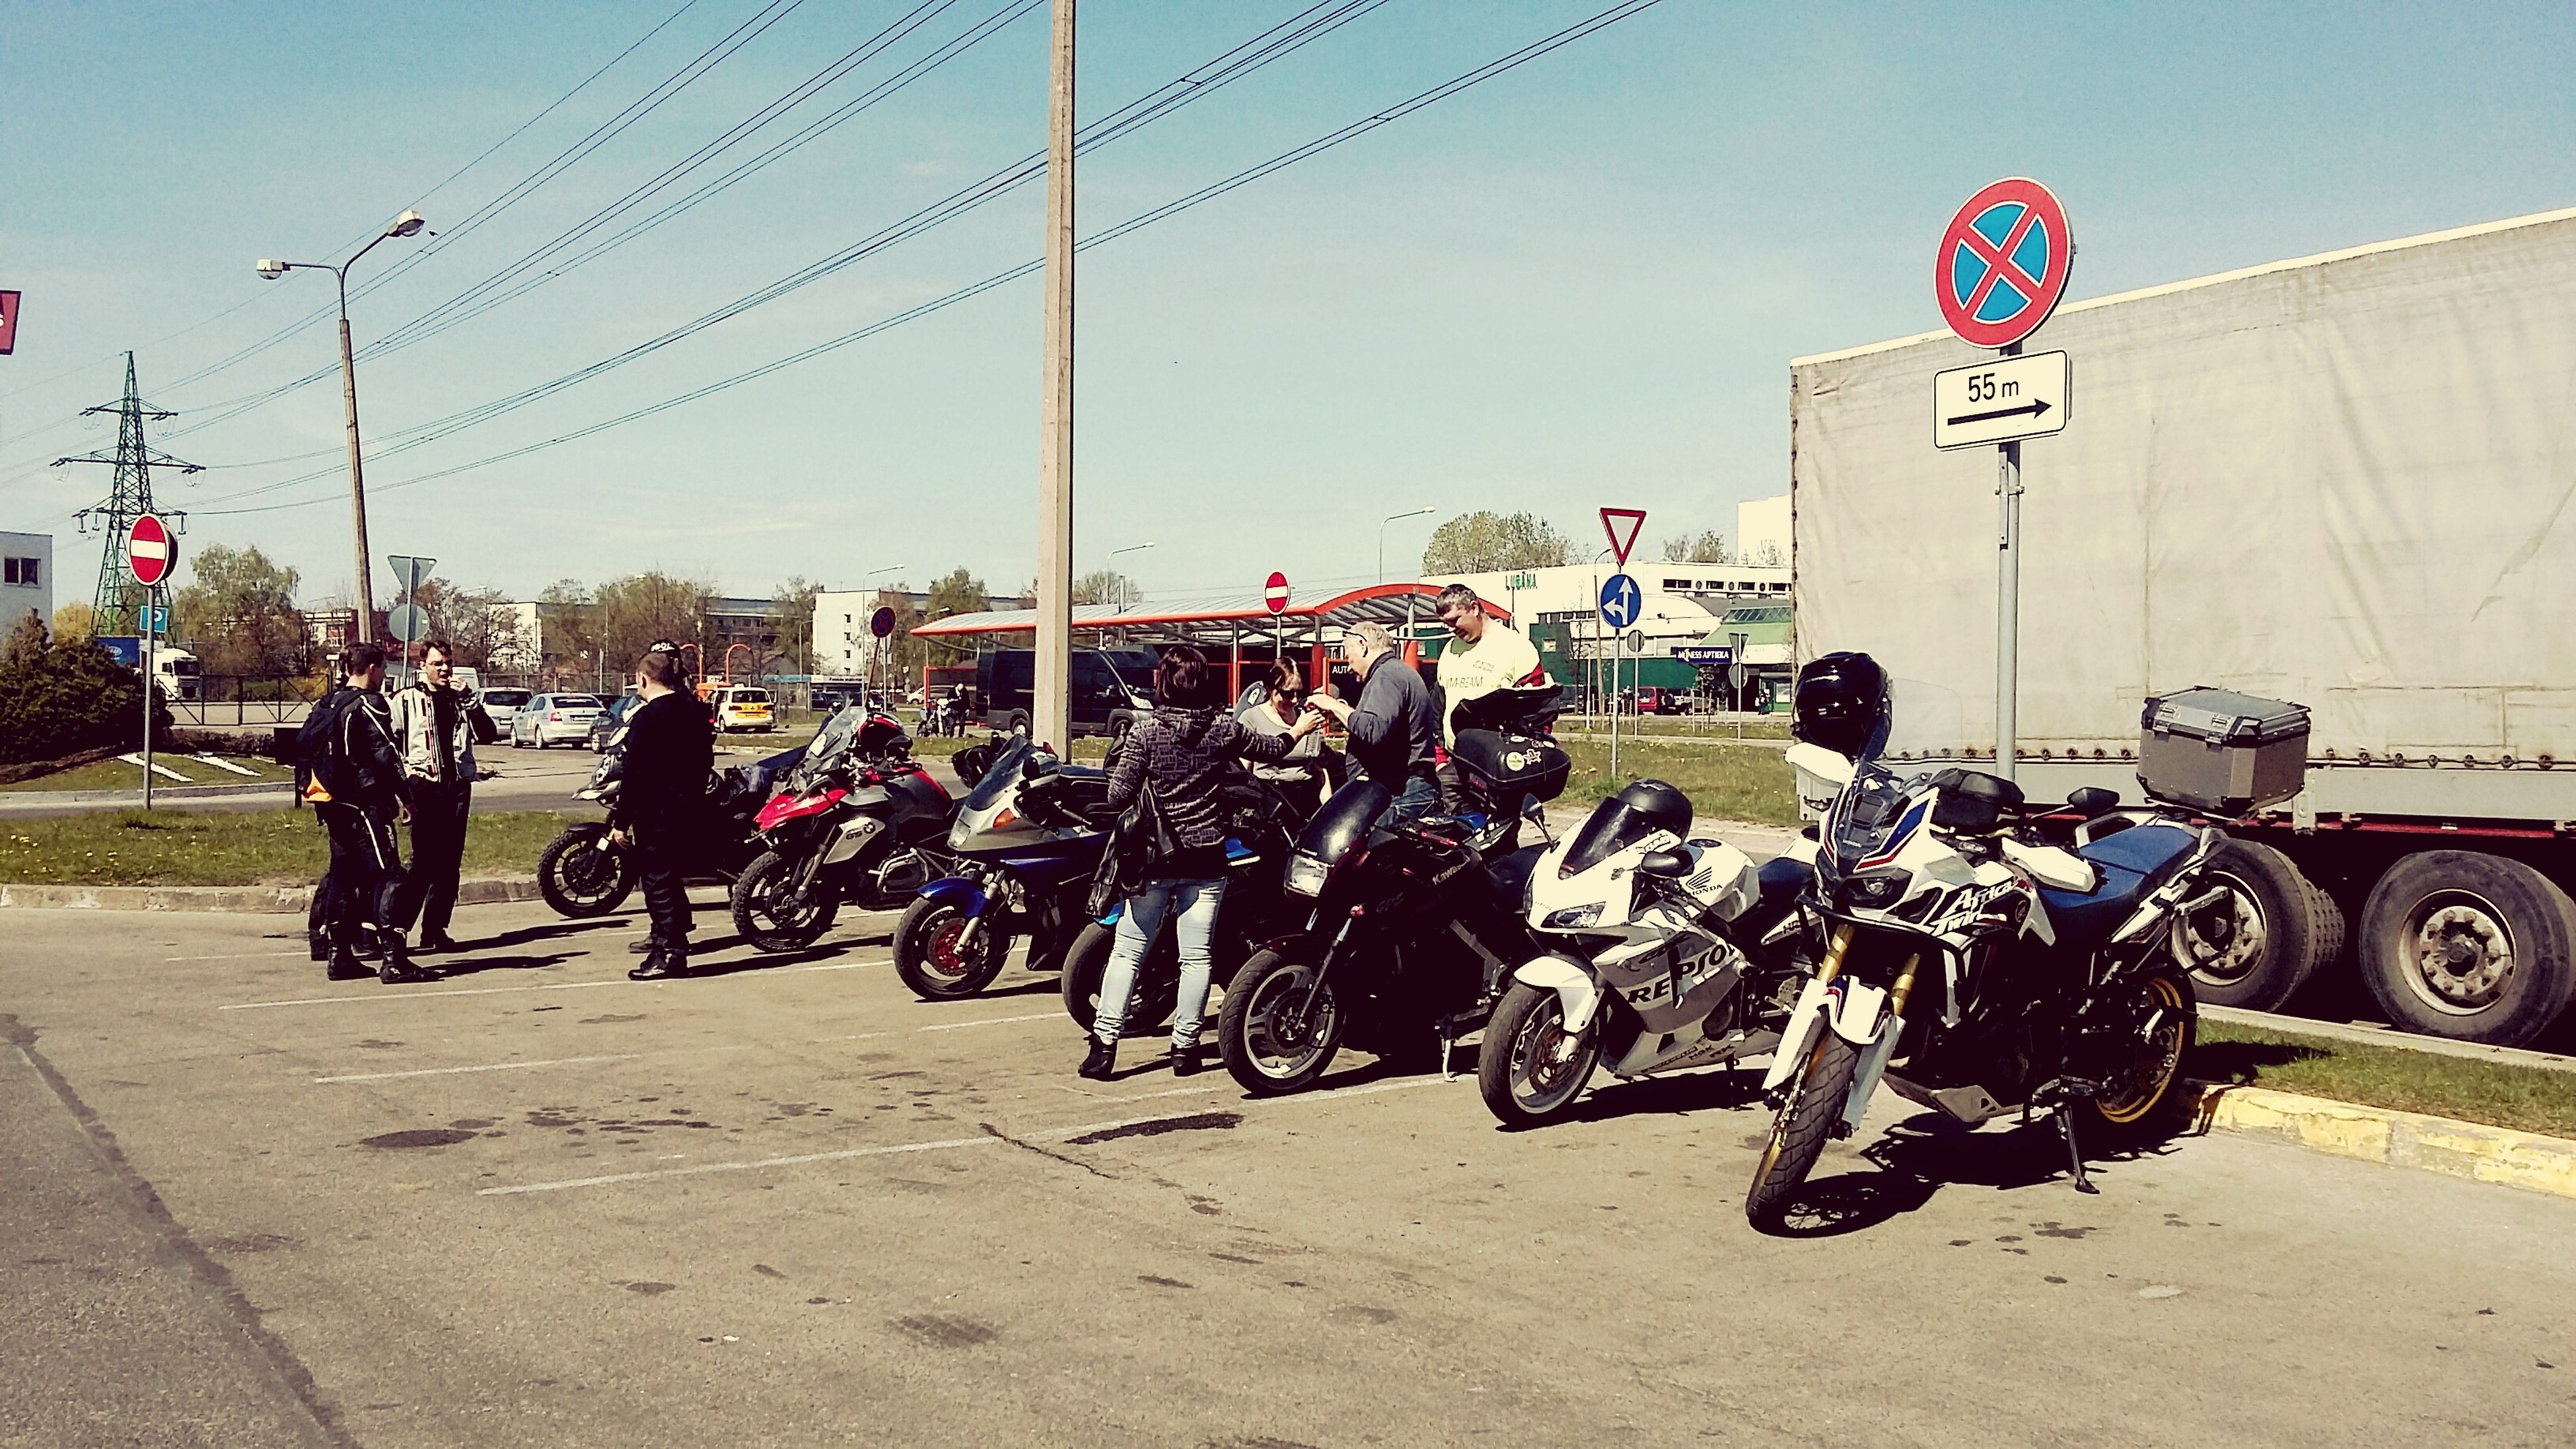 transportation, mode of transport, land vehicle, motorcycle, large group of people, real people, men, road, built structure, street, day, helmet, building exterior, outdoors, city, architecture, sky, biker, riot, people